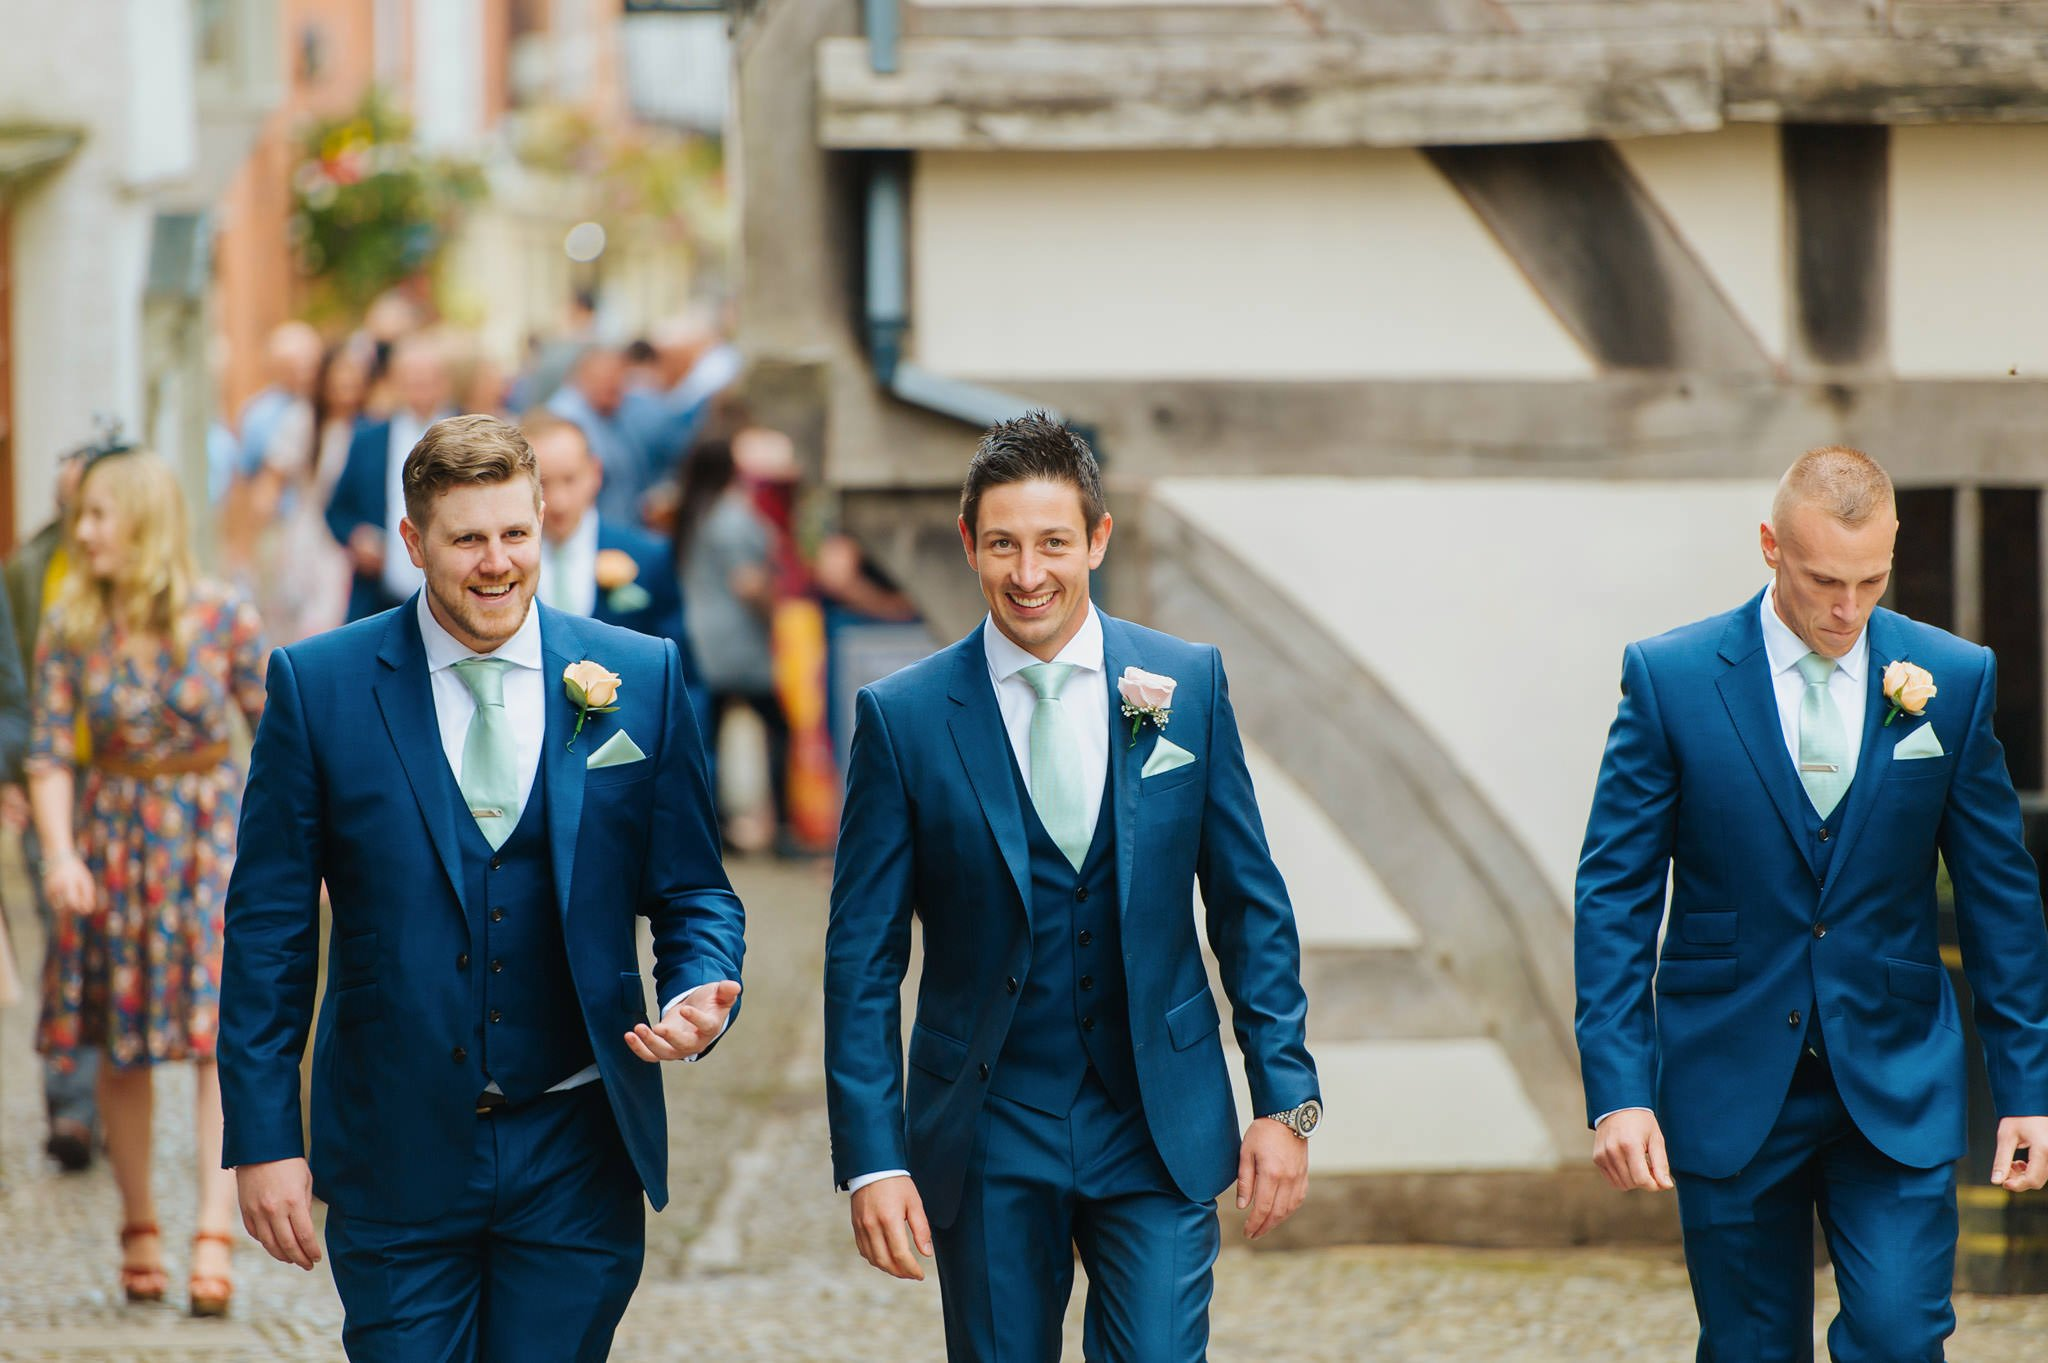 eastnor castle wedding pictures 26 - Eastnor Castle wedding photographer Herefordshire, West Midlands - Sarah + Dean